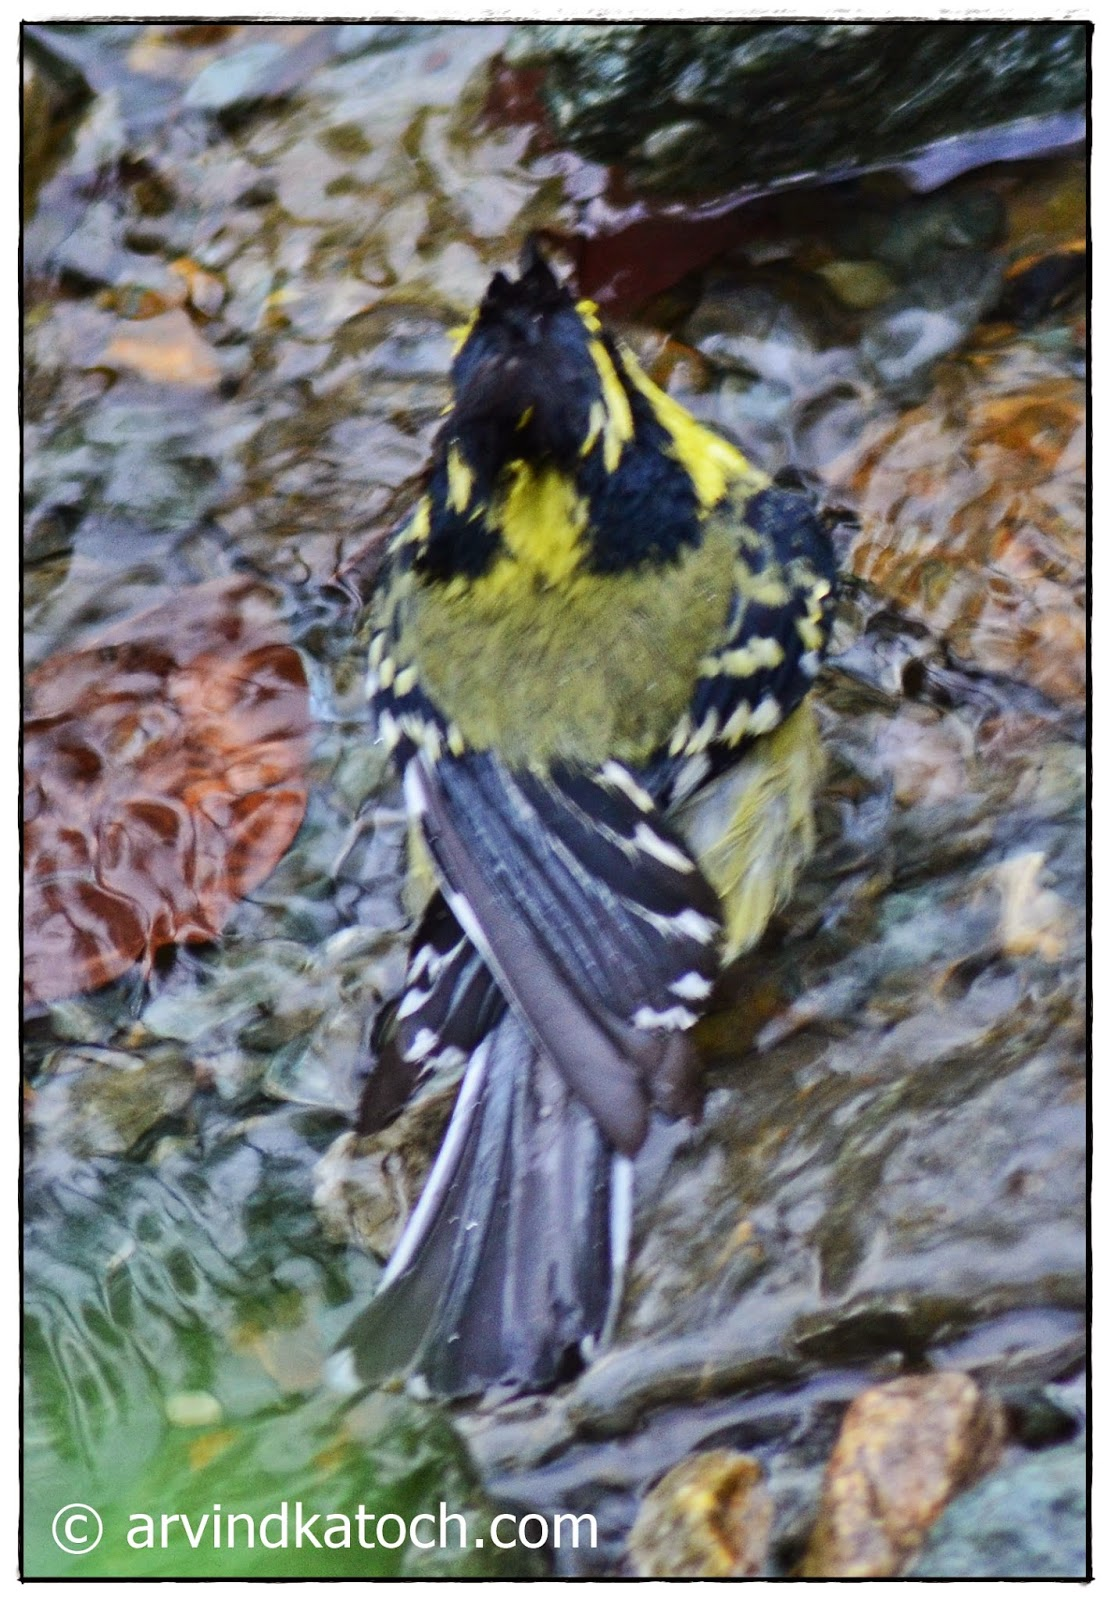 Himalayan black-lored tit, water